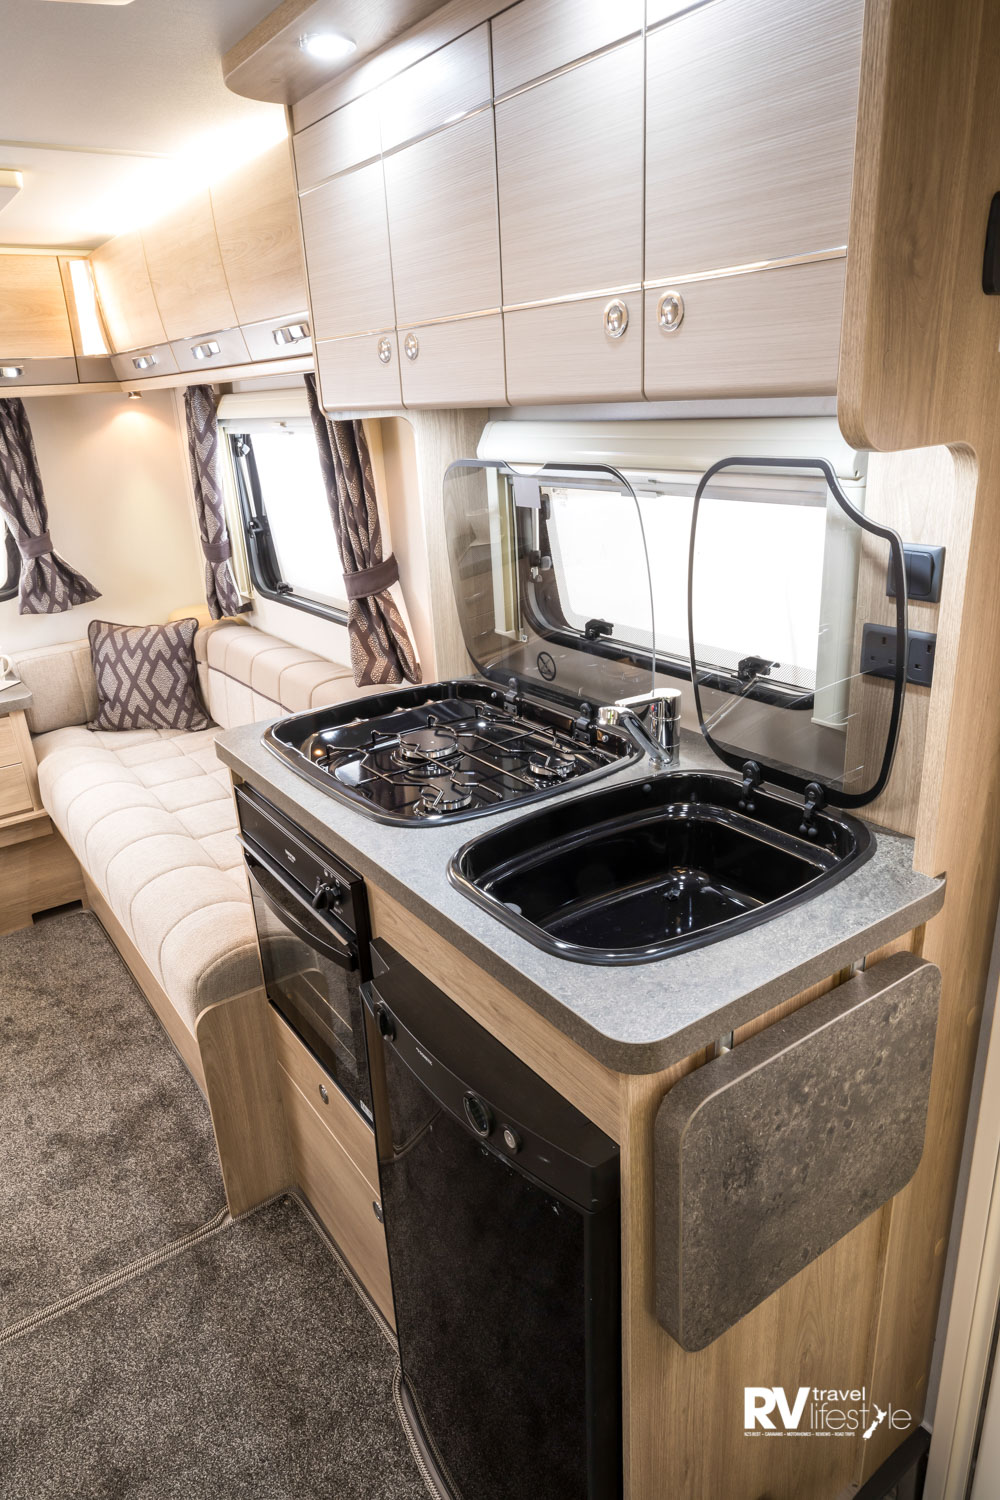 With everything in easy reach and a fold-up for extra bench space, the galley is very workable